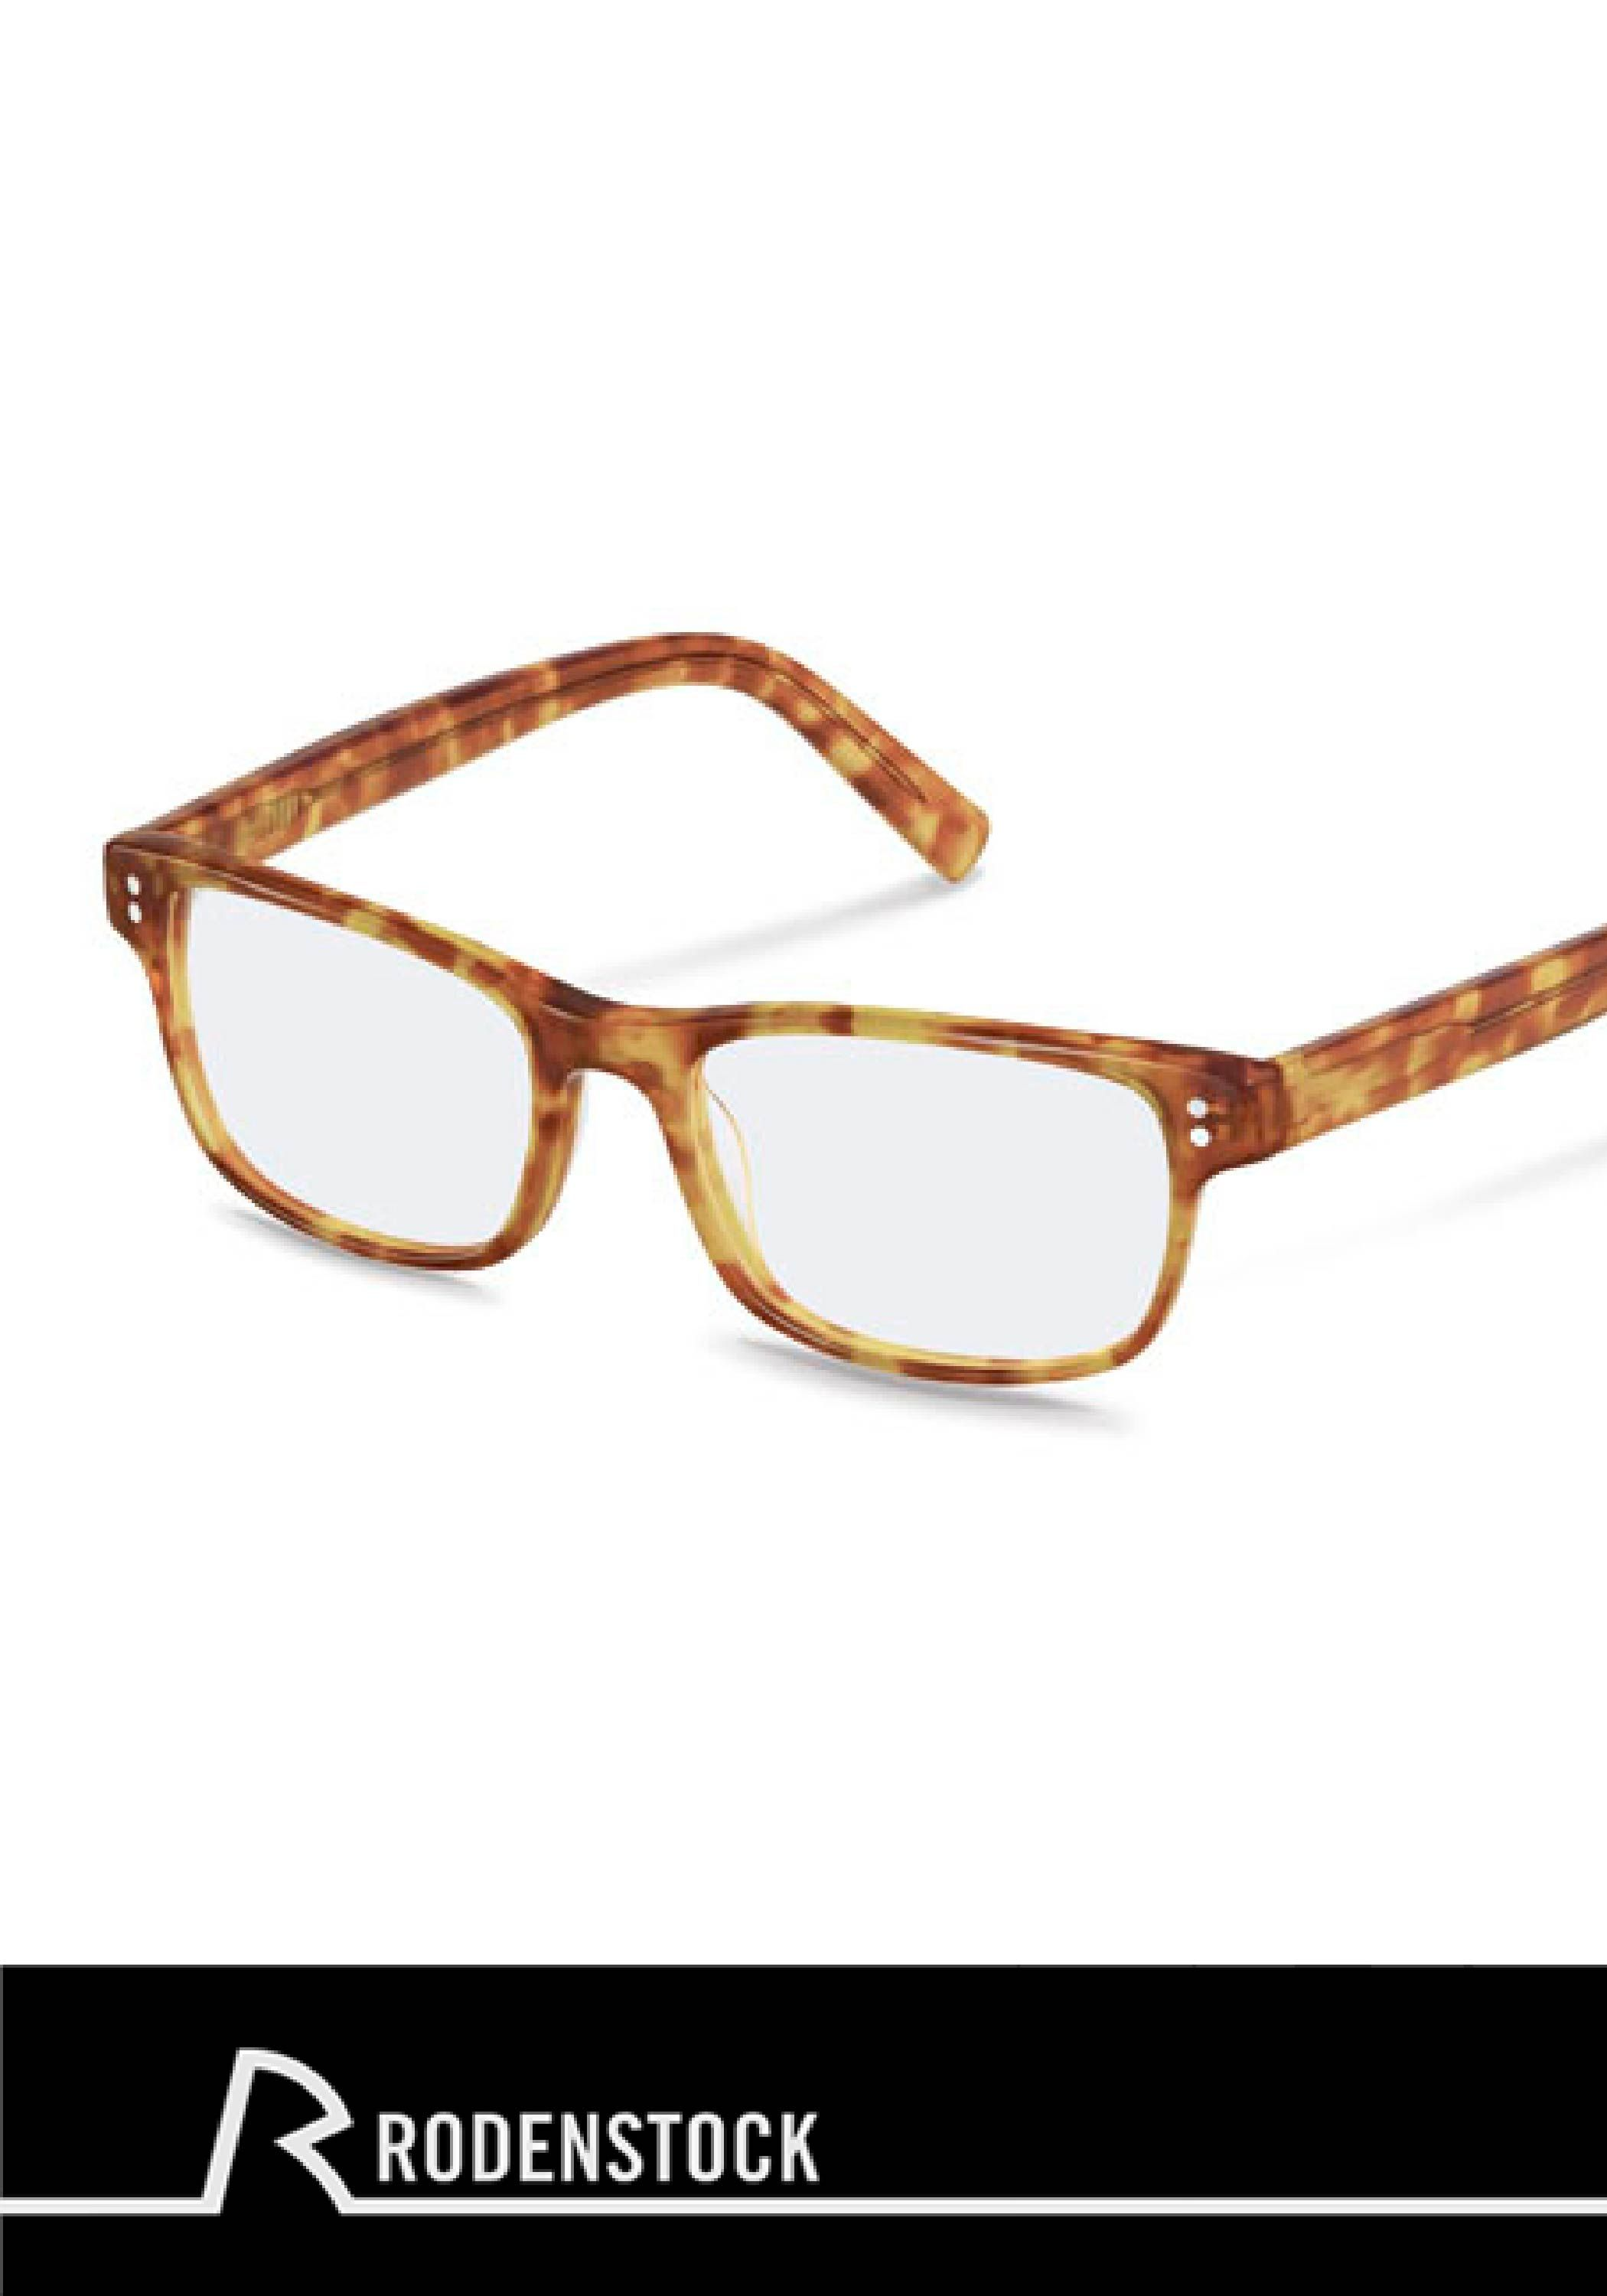 See better and look perfect in these stylish frames from Rodenstock ...